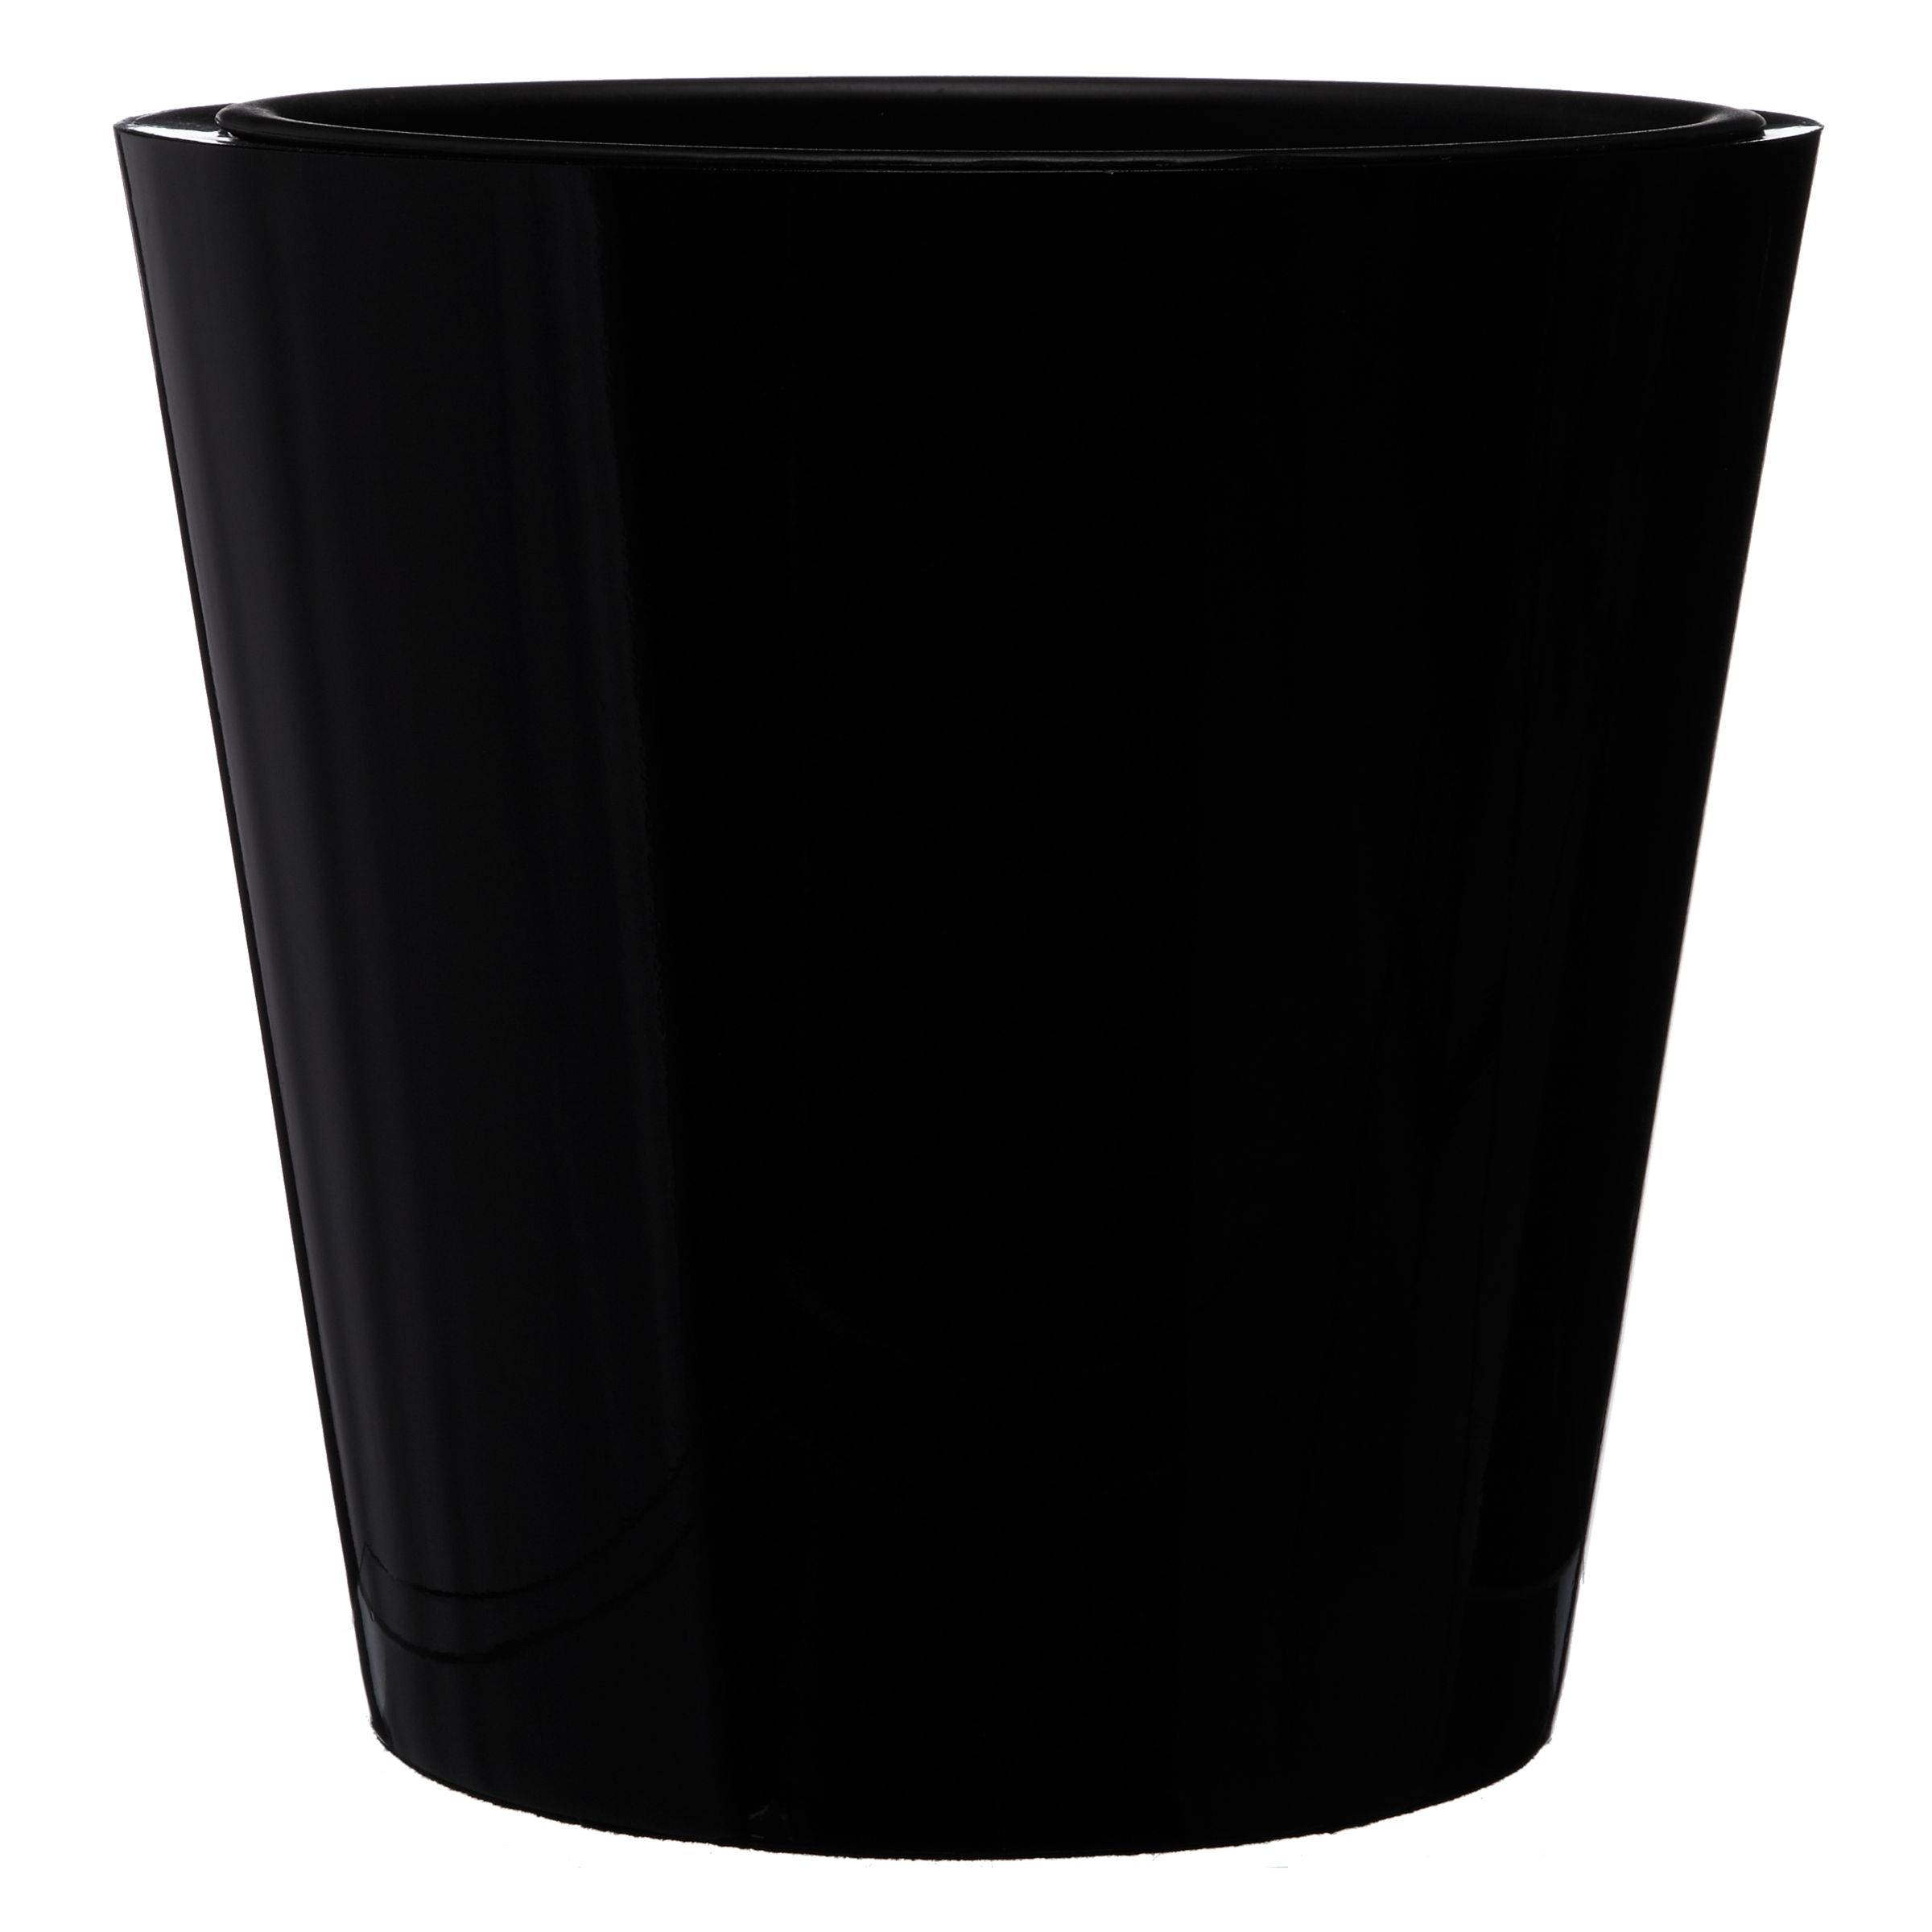 House by John Lewis Plant Pot, Black, Large